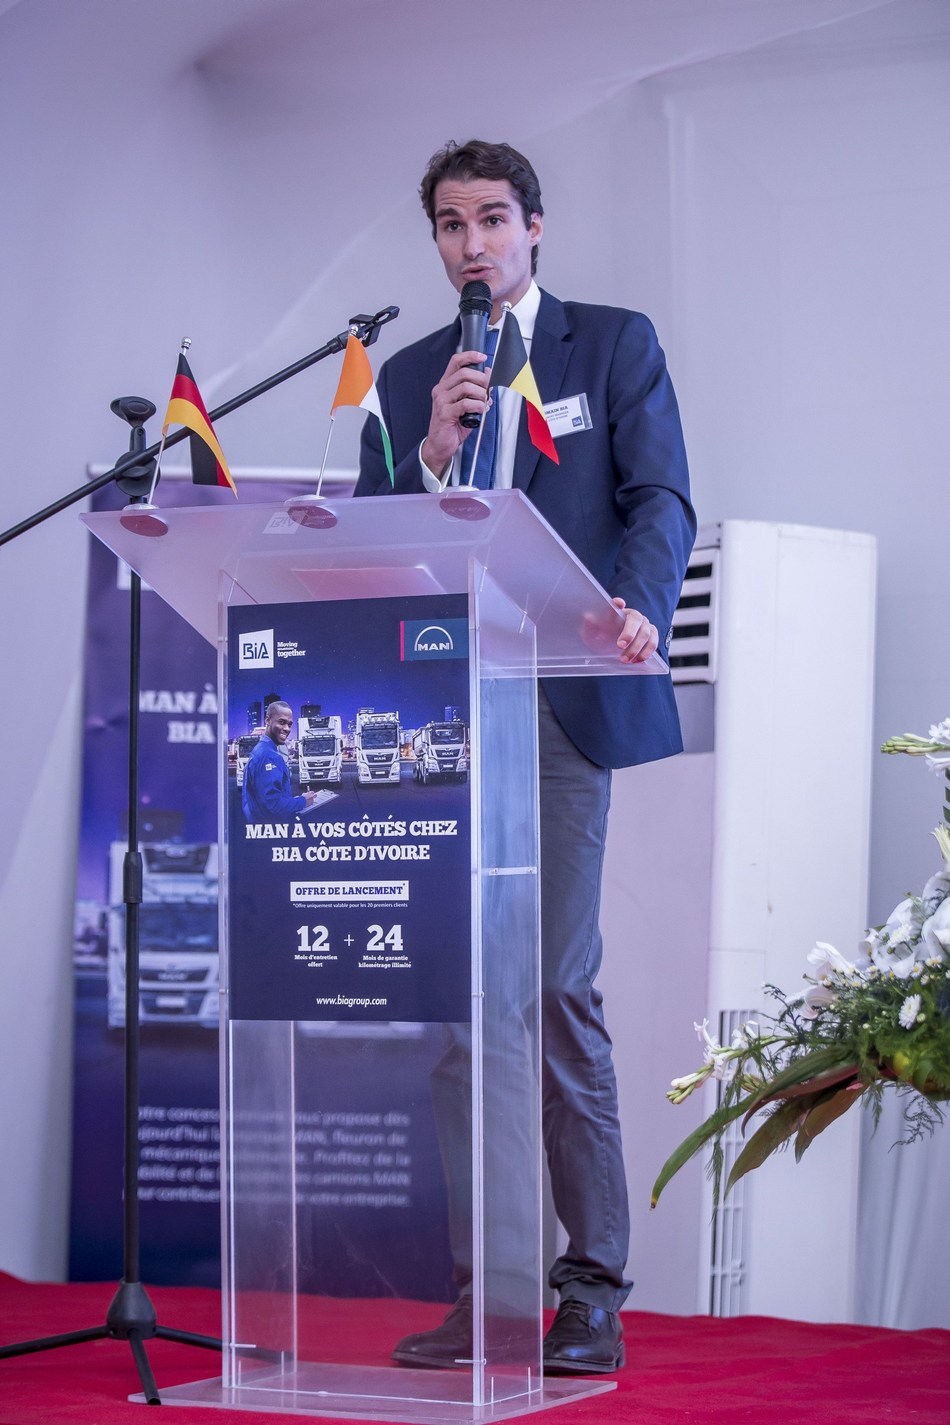 MAN Launch in Ivory Coast: Opening speech from Romain BIA, Managing Director BIA Ivory Coast (PRNewsfoto/BIA Group and MAN Truck & Bus AG)